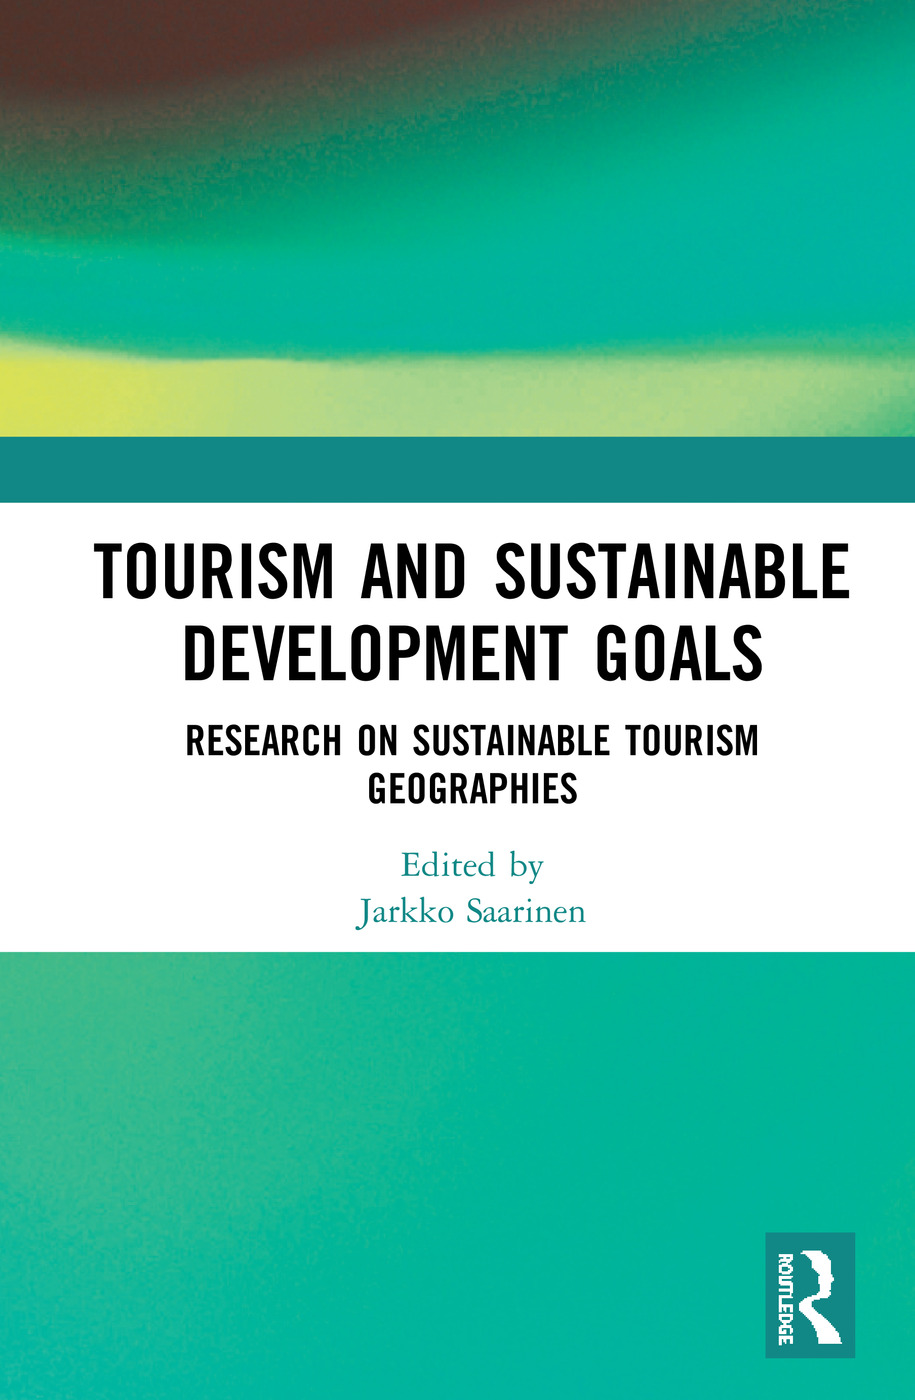 Tourism and Sustainable Development Goals: Research on Sustainable Tourism Geographies book cover